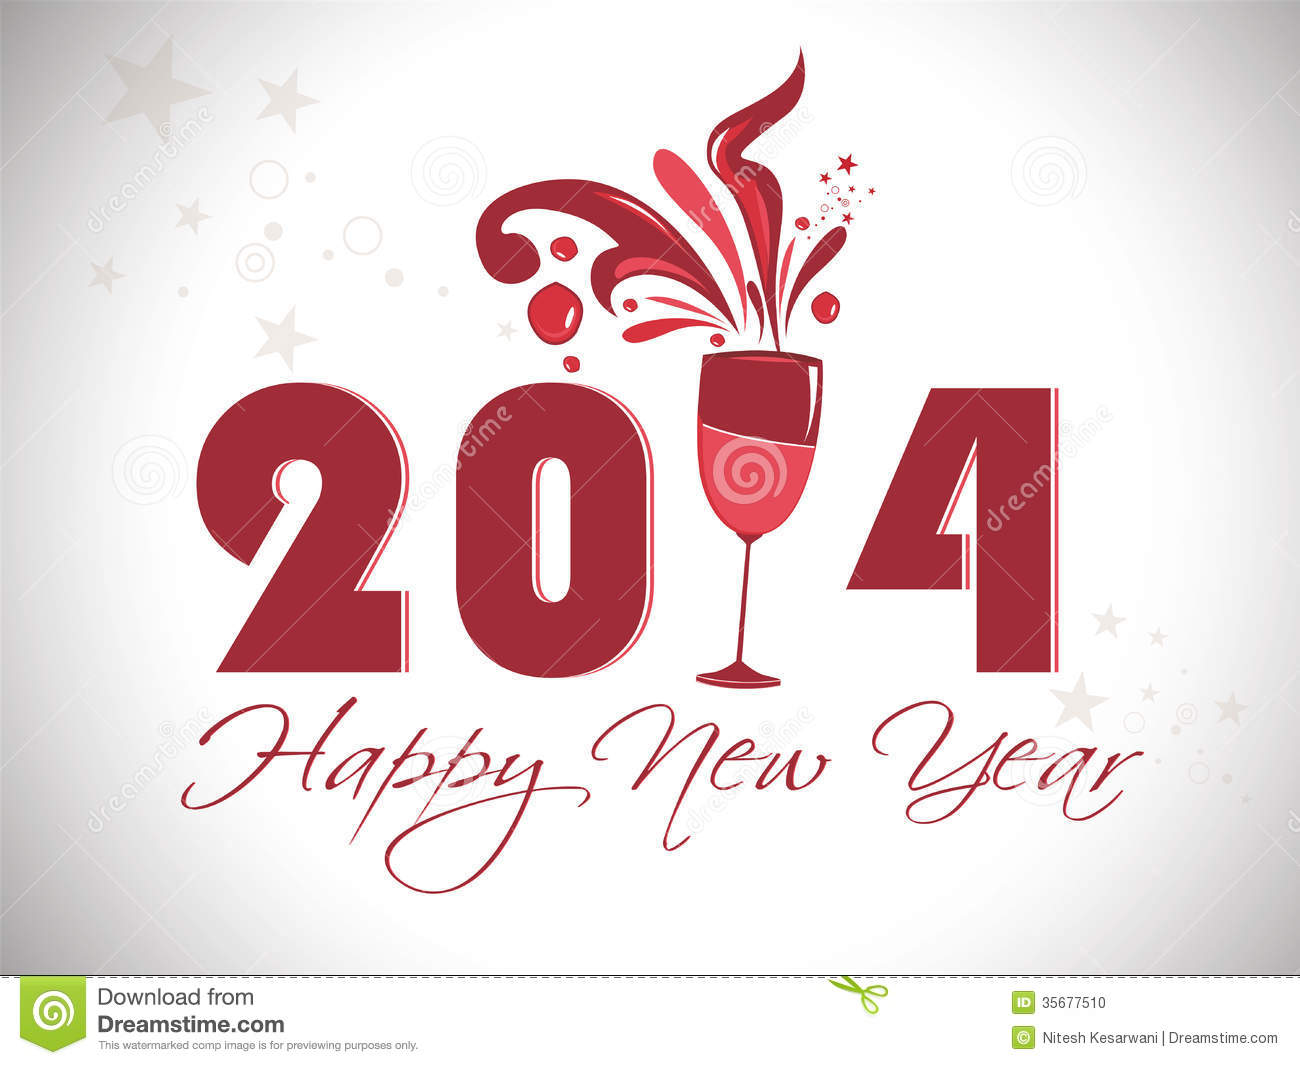 Poster design 2014 - Creative Happy New Year 2014 Design With Champagne Glasses Celebration Party Poster Banner Or